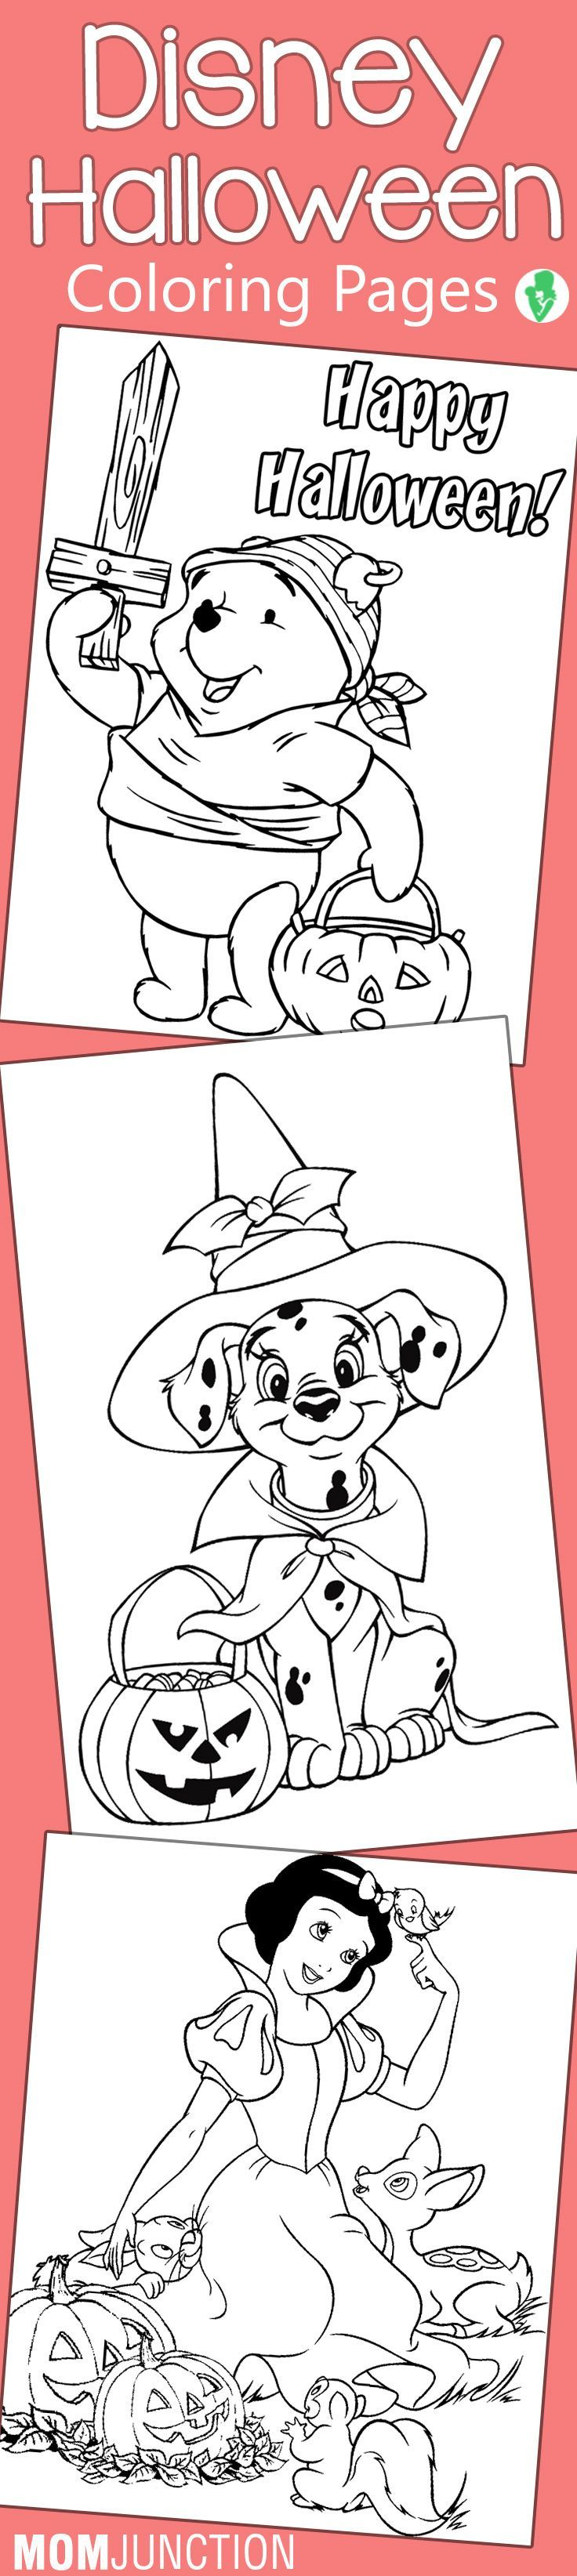 25 Amazing Disney Halloween Coloring Pages For Your Little Ones ...